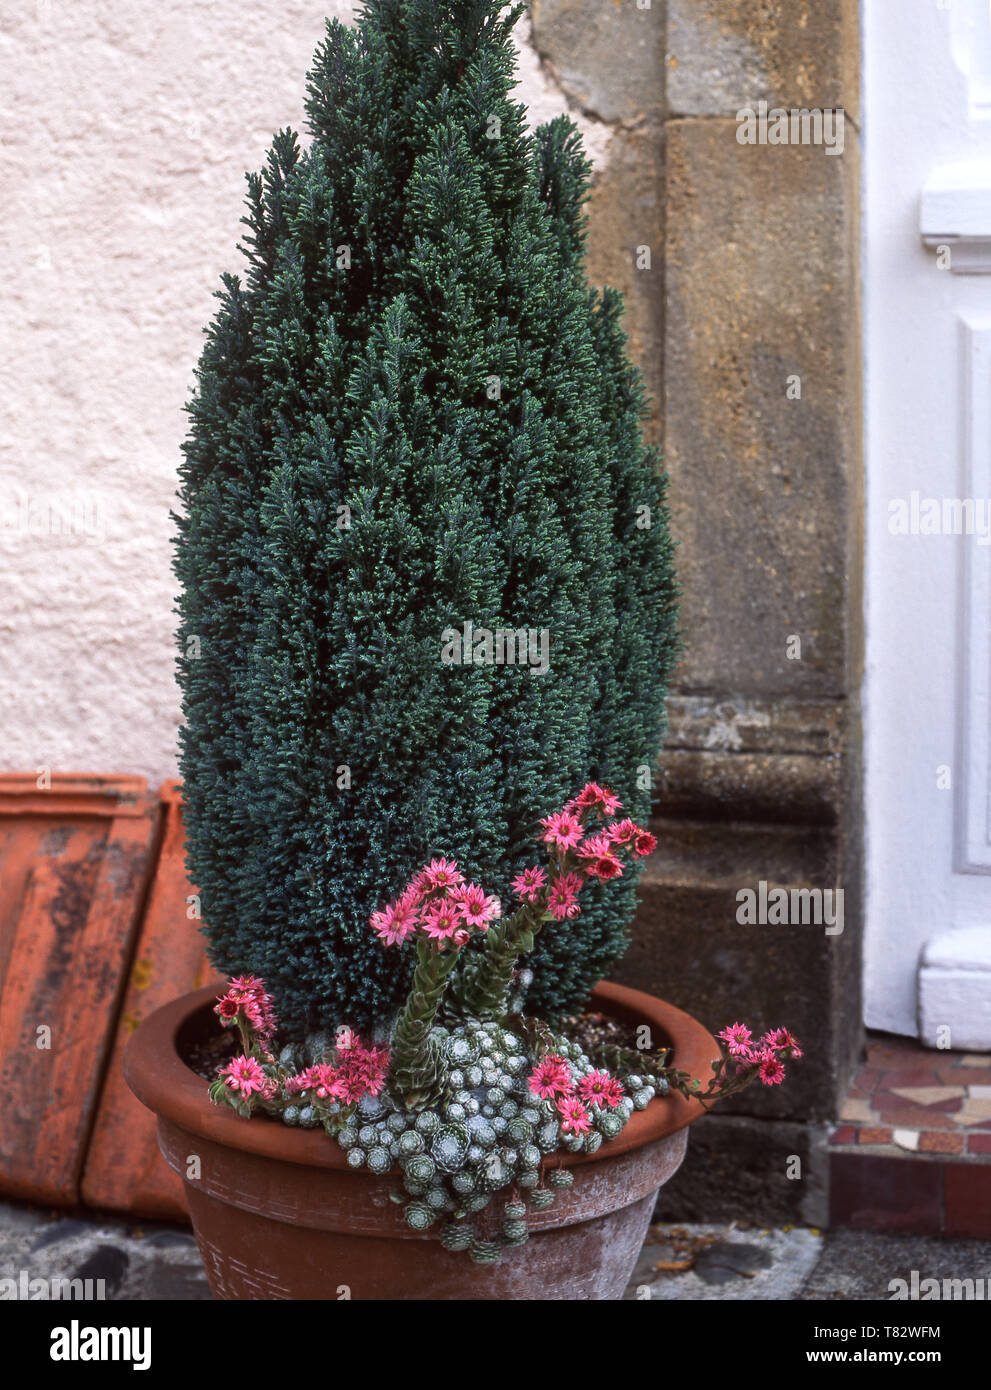 Slow growing conifer with cobweb houseleek (Sempervivum arachnoideum-rose) by the front door of a Gascony farmhouse. - Stock Image